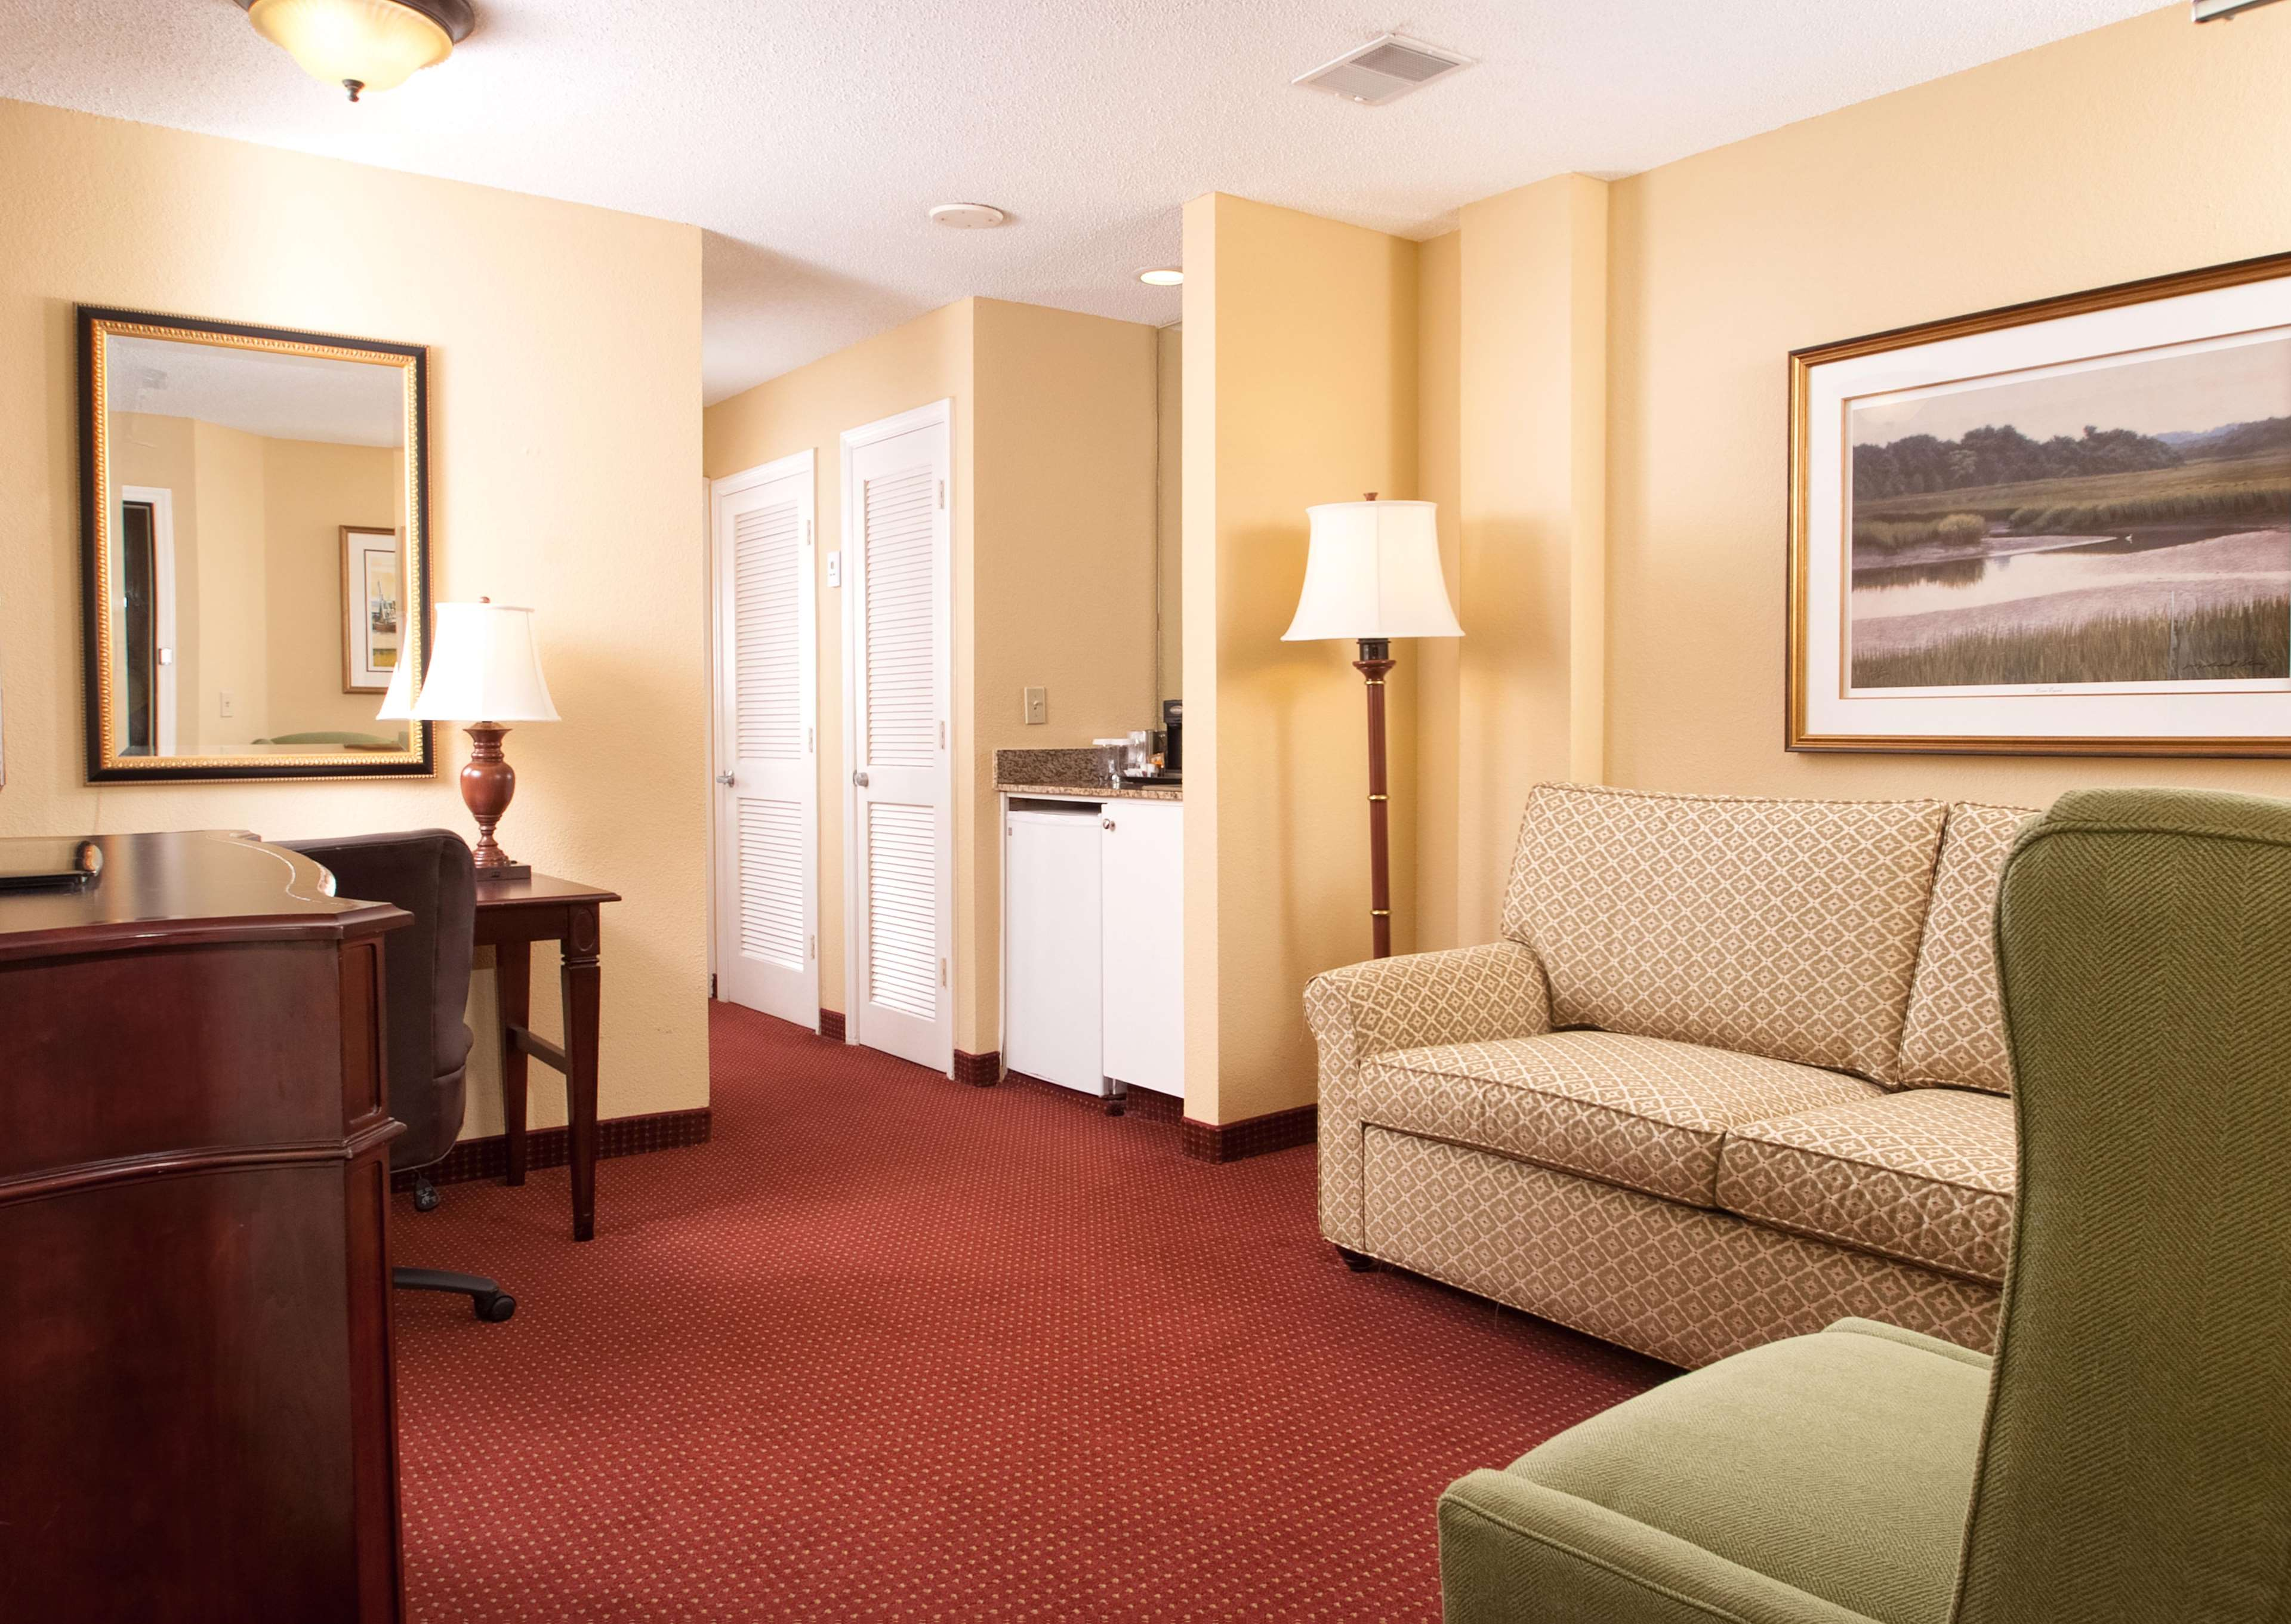 DoubleTree by Hilton Hotel & Suites Charleston - Historic District image 38